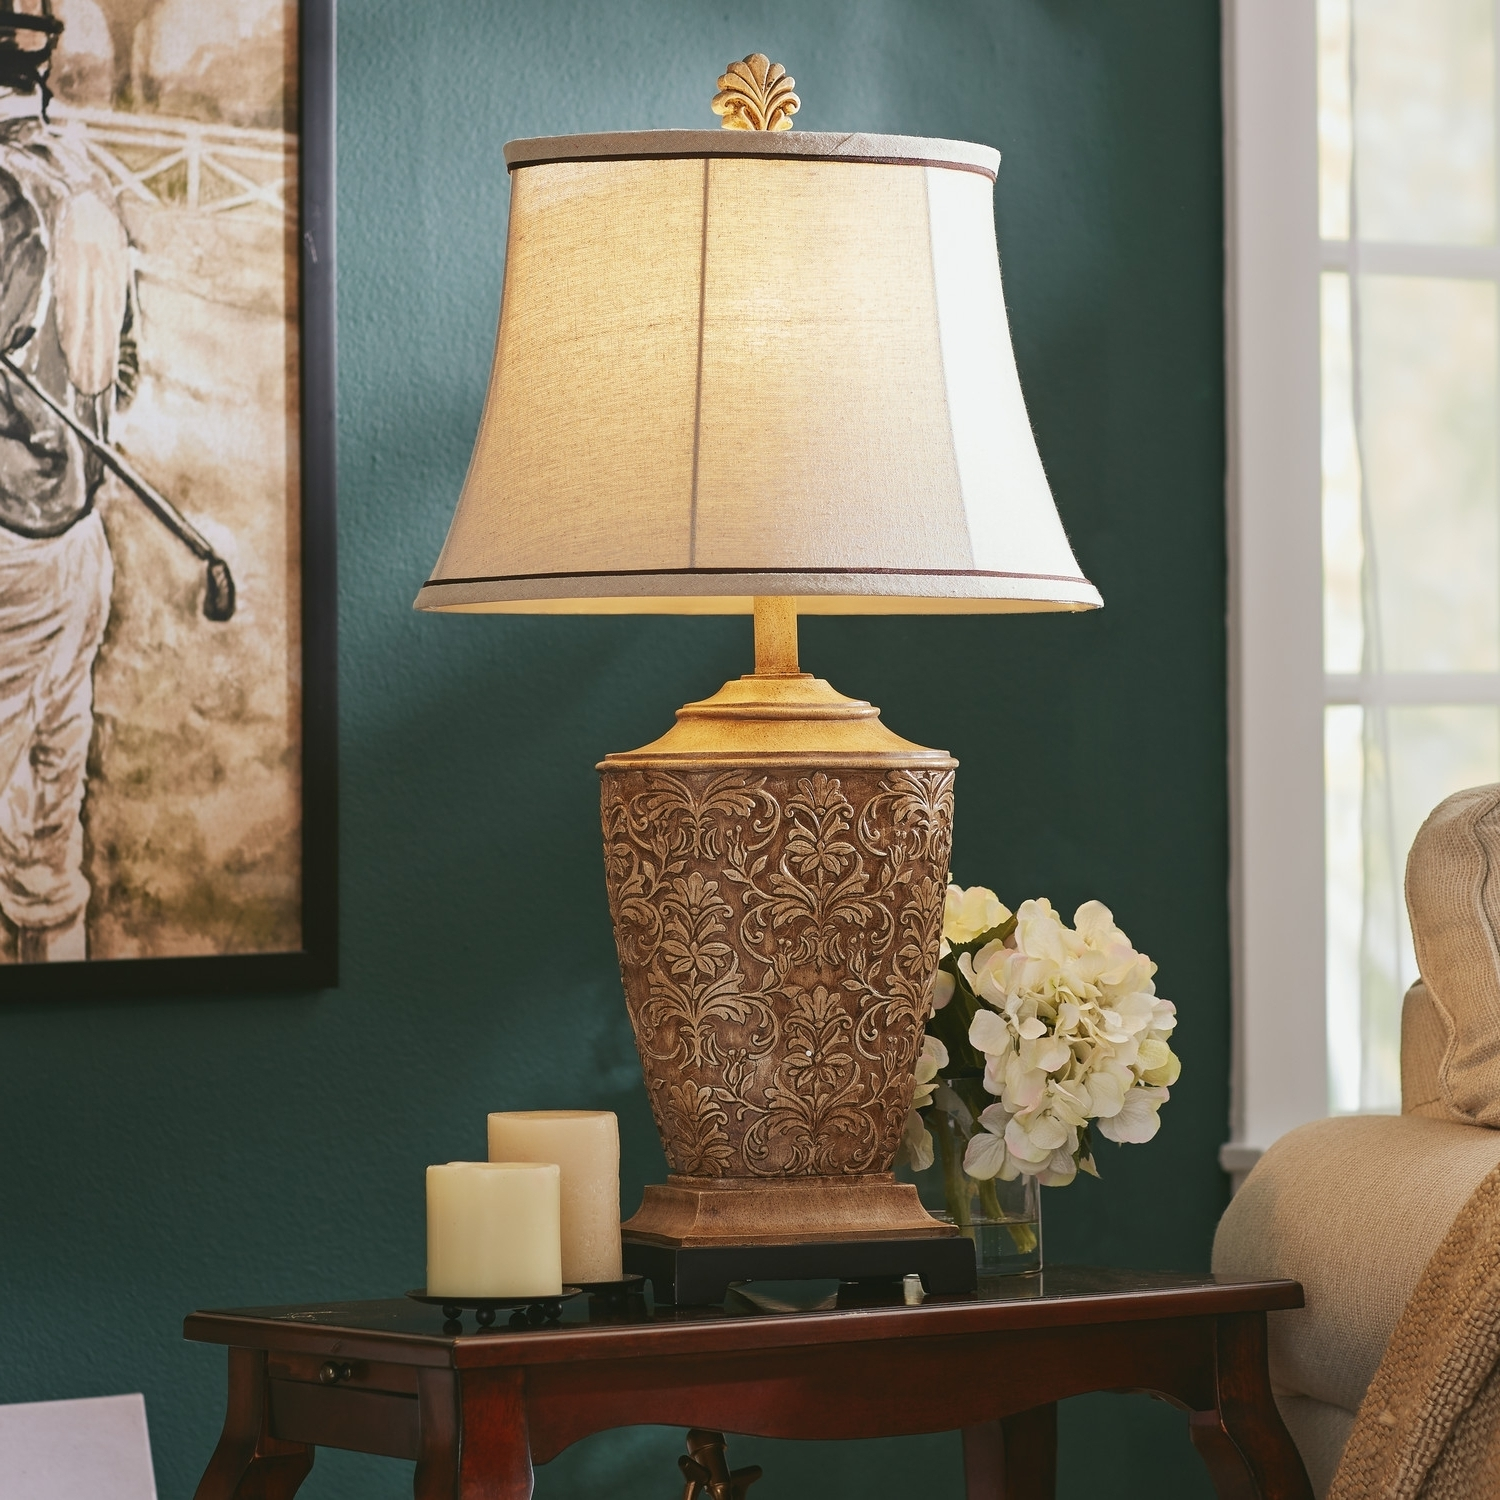 Living Room Table Reading Lamps In Current Side Table Lamps For Living Room – Living Room Decorating Design (View 8 of 15)